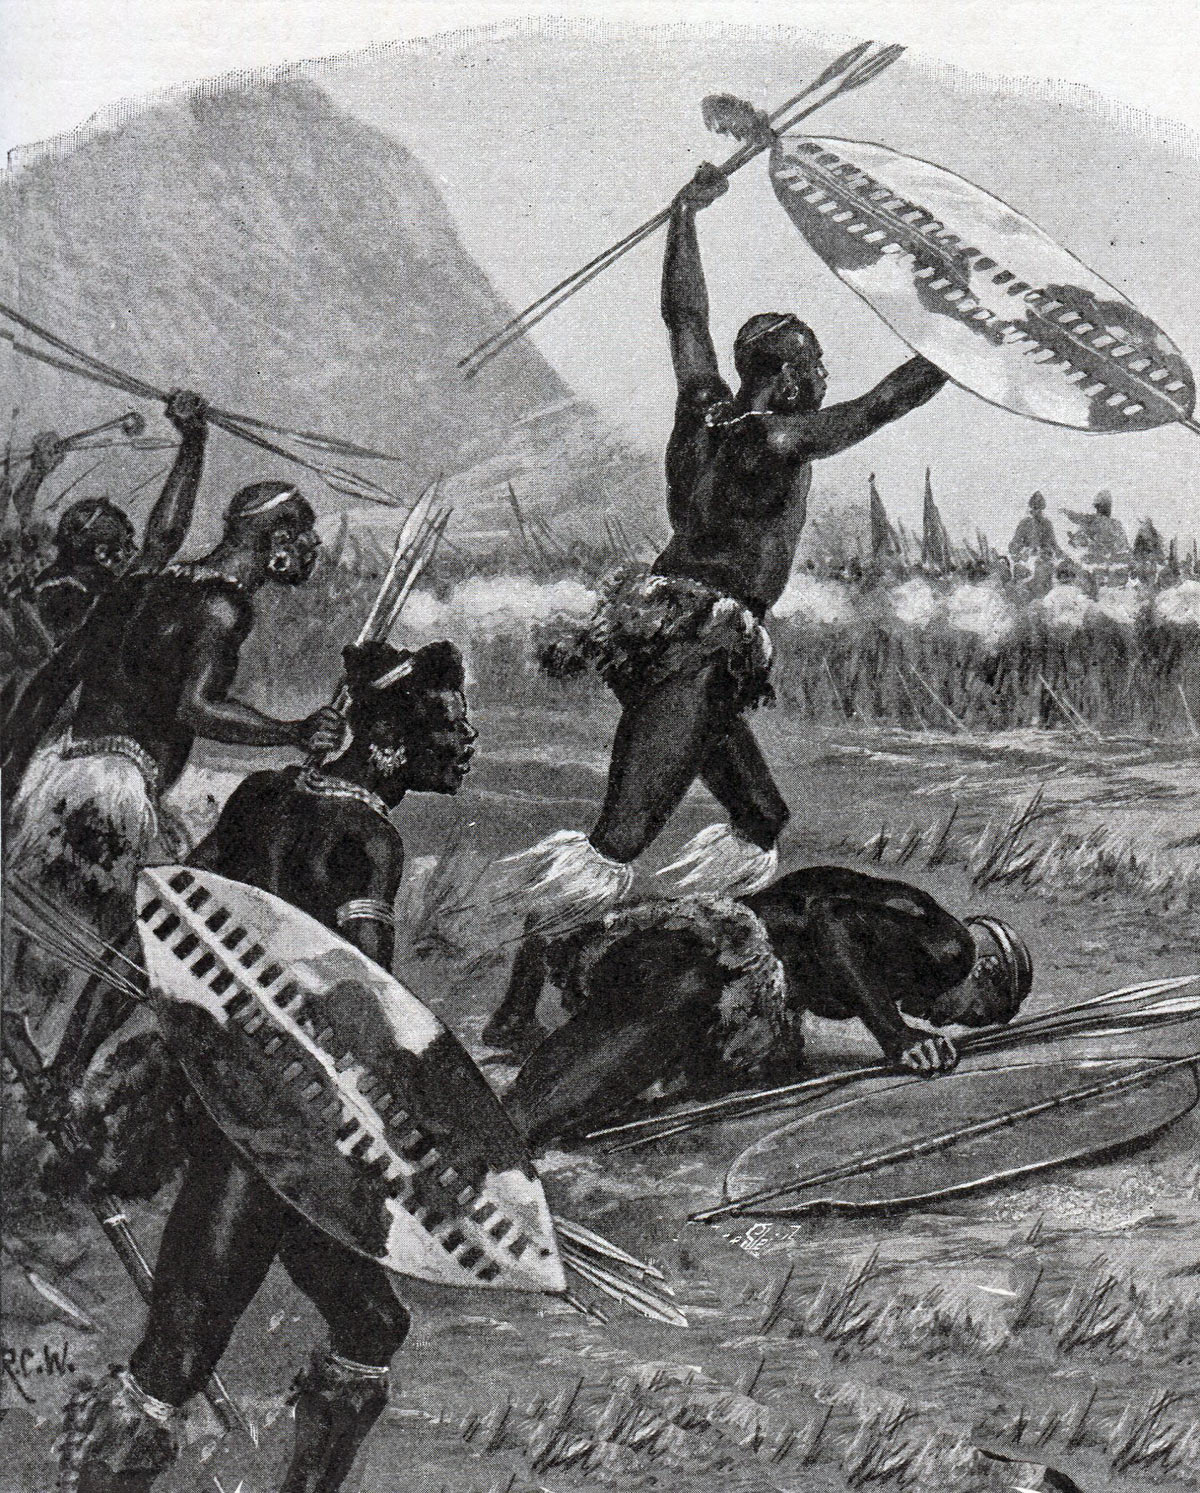 The Zulu attack at the Battle of Isandlwana on 22nd January 1879 in the Zulu War: picture by Richard Caton Woodville